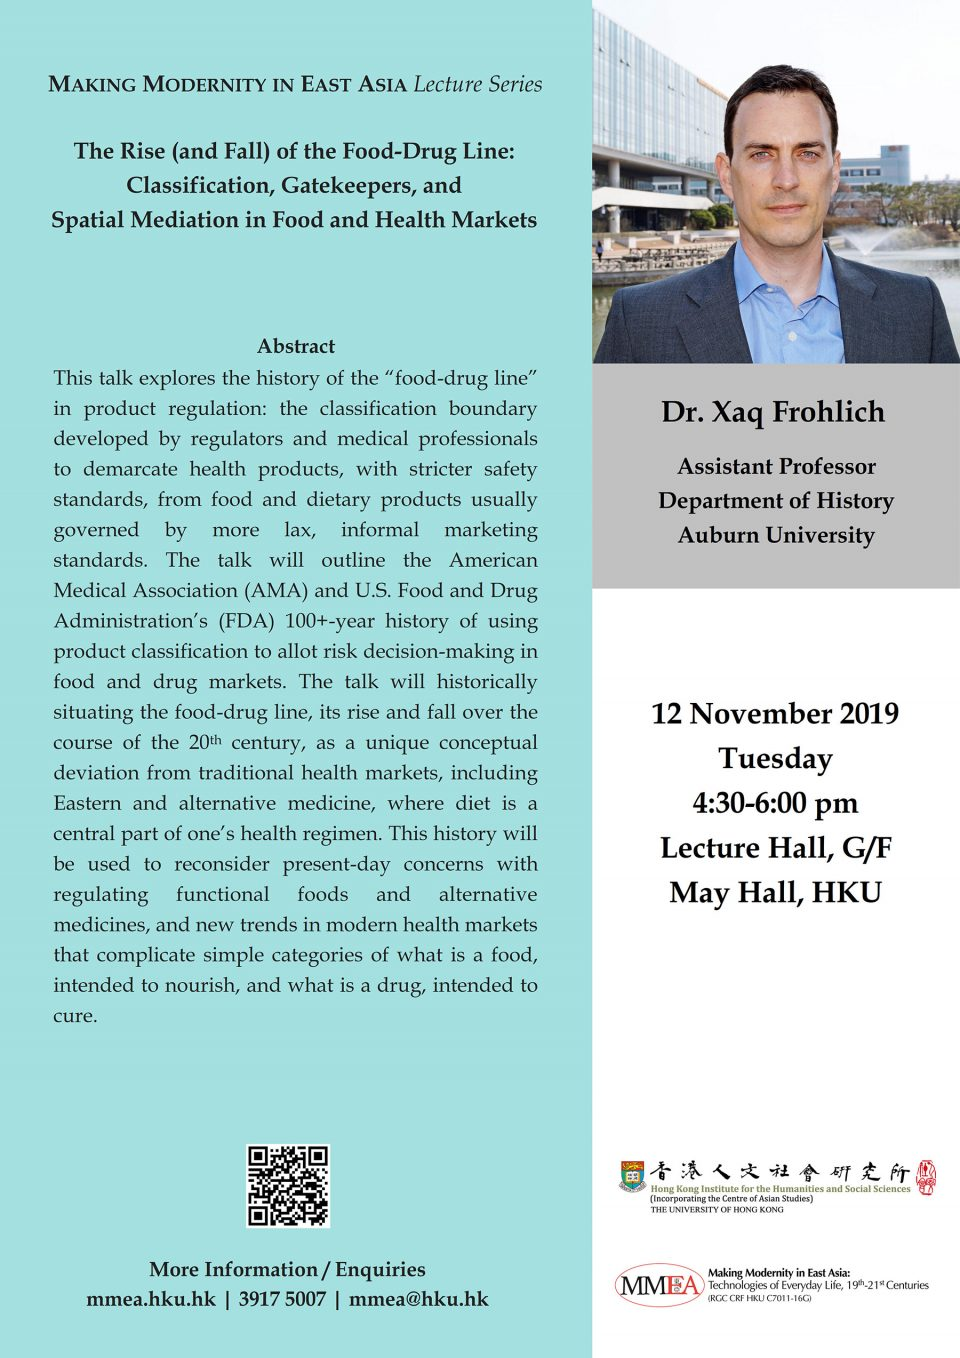 "MMEA Lecture Series ""The Rise (and Fall) of the Food-Drug Line: Classification, Gatekeepers, and Spatial Mediation in Food and Health Markets"" by Dr. Xaq Frohlich (November 12, 2019)"